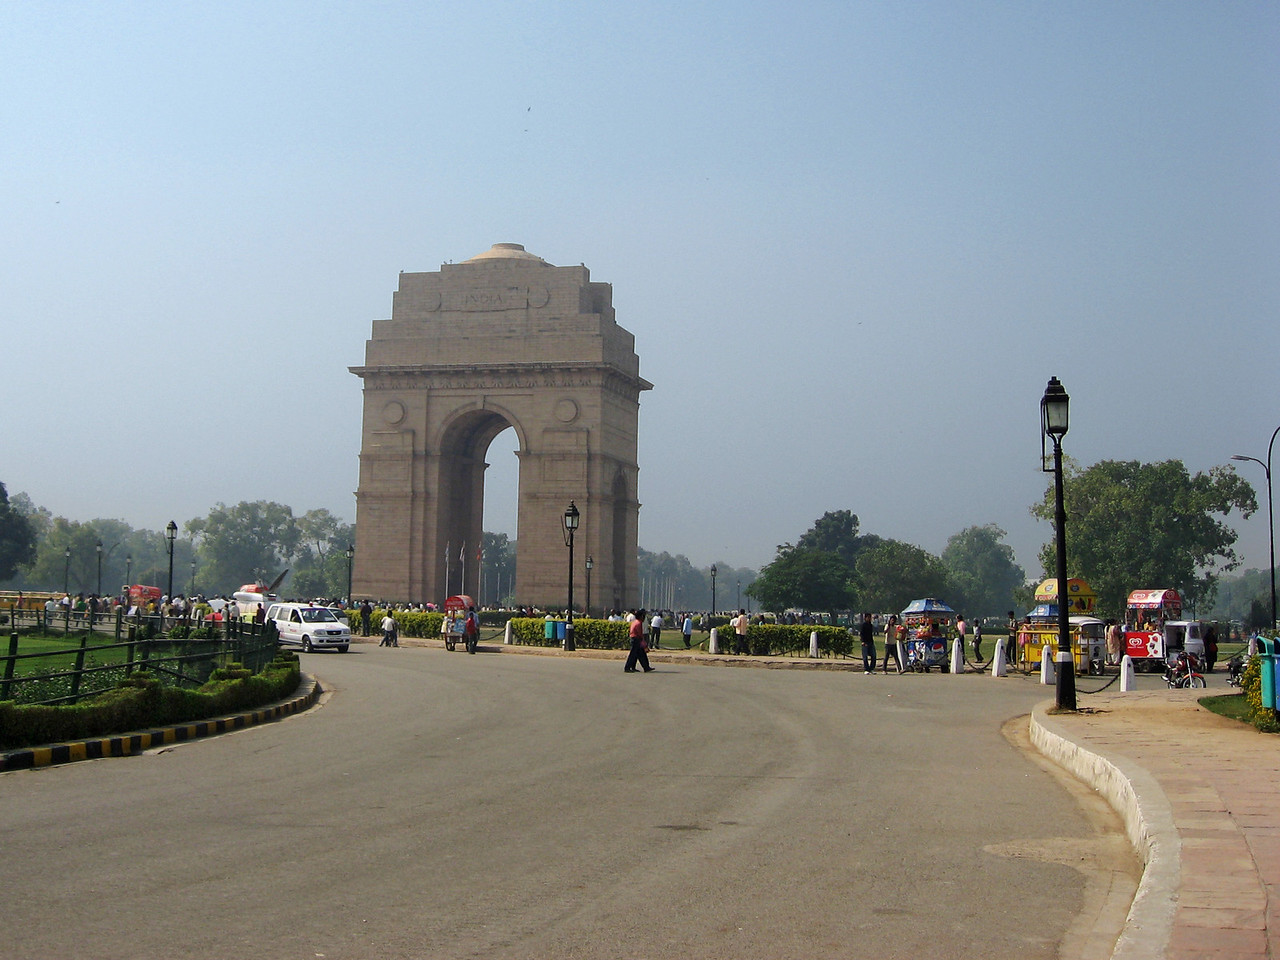 India Gate from a distance